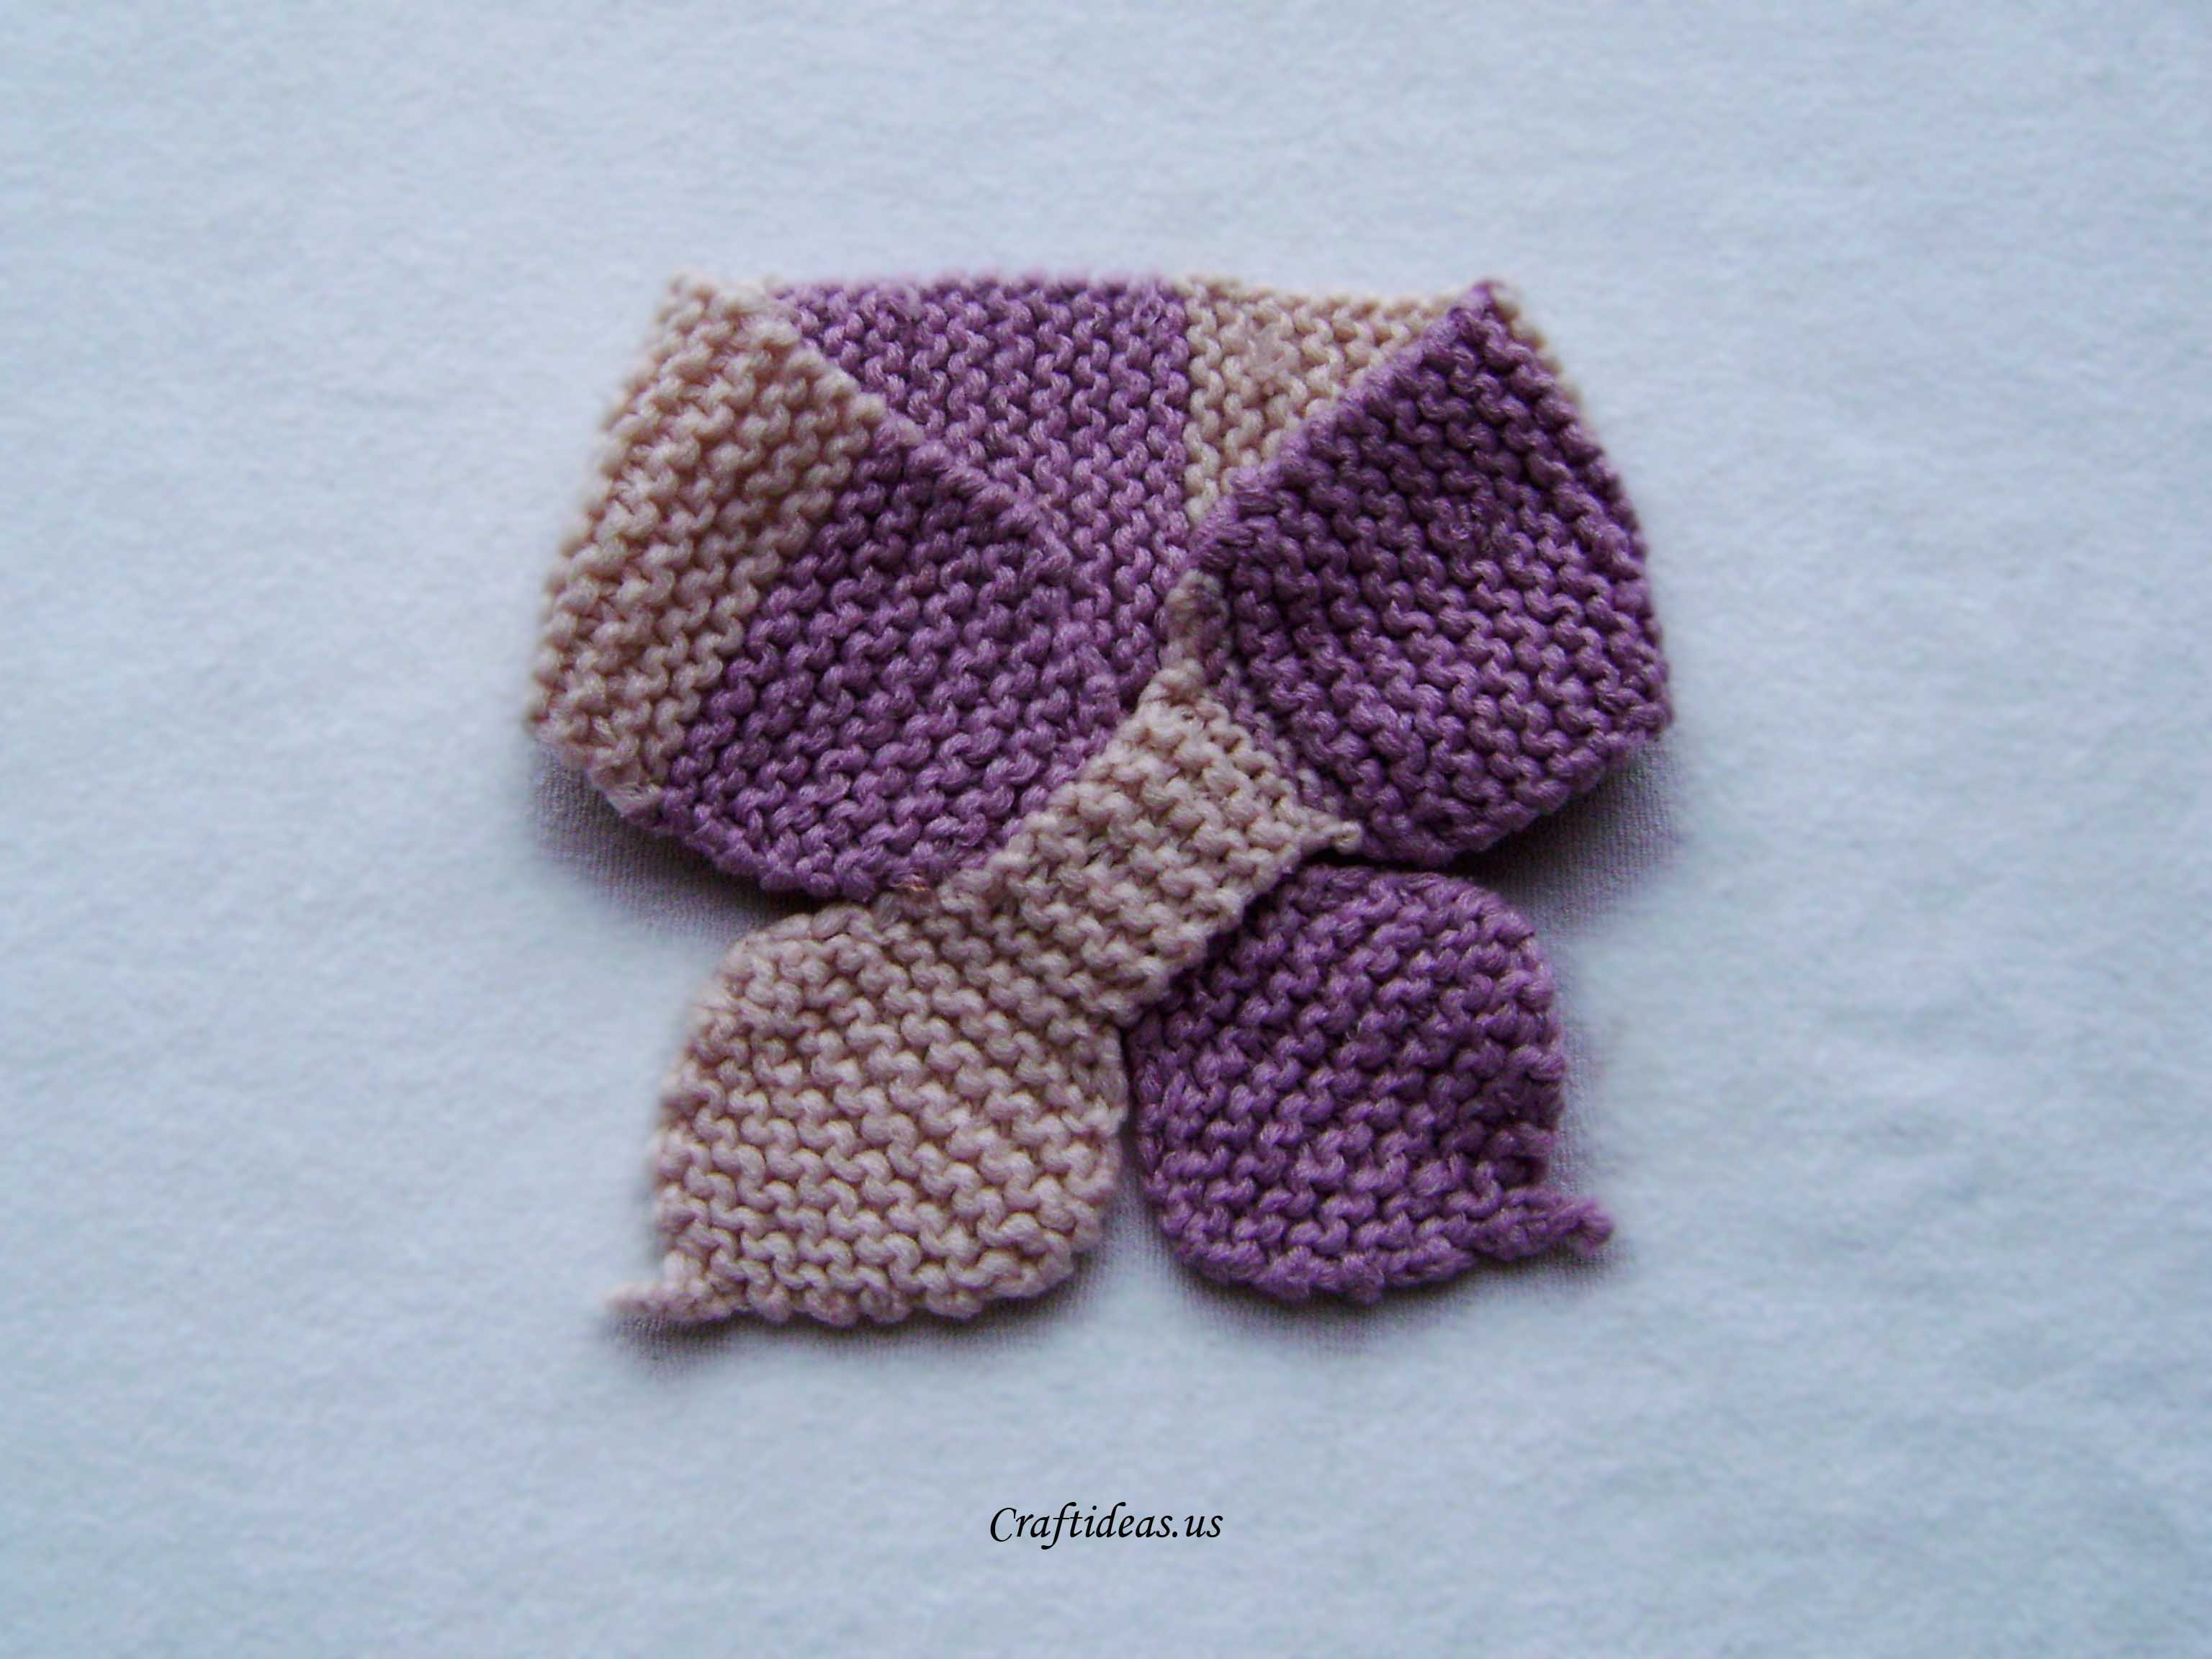 Knitting Pattern For Scarf For Toddler : Knitting lotus scarf tutorial - Craft Ideas